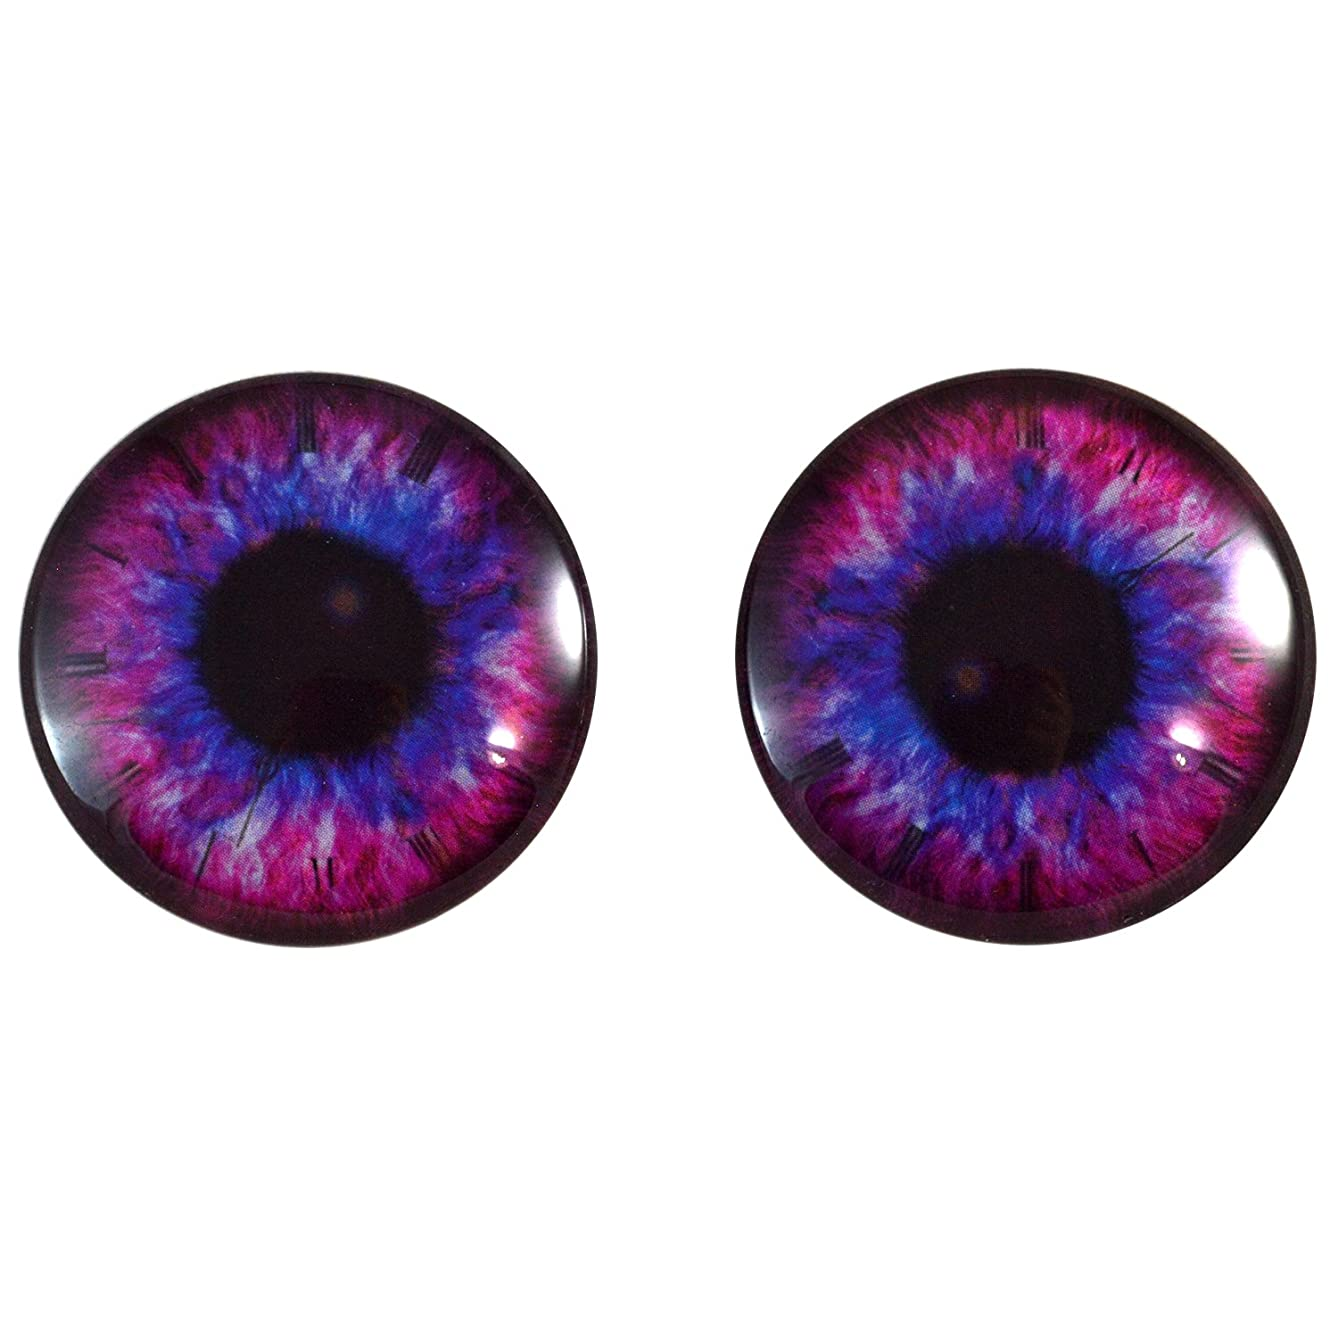 40mm Pair of Pink and Blue Steampunk Clock Glass Eyes, for Jewelry Making, Dolls, Sculptures, More